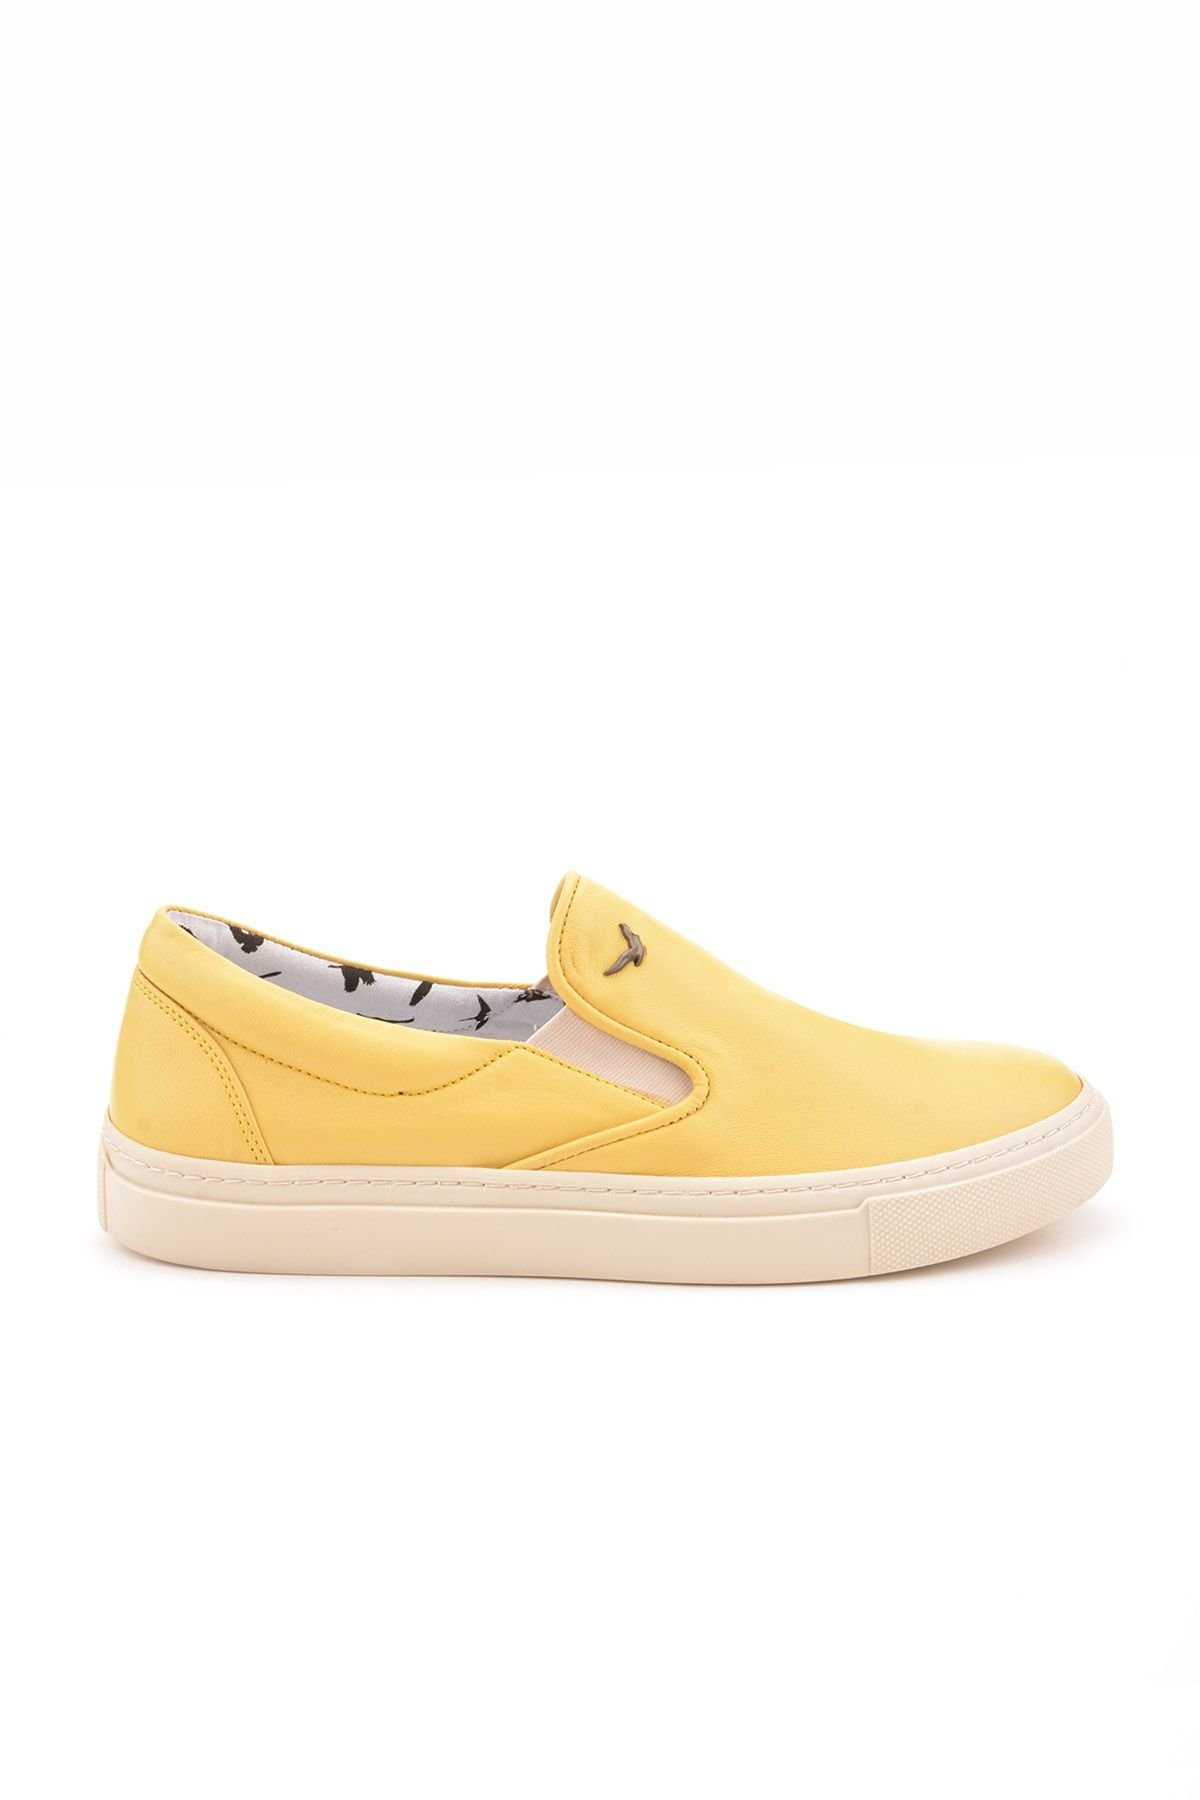 Art Goya Women Sneakers From Genuine Leather Yellow